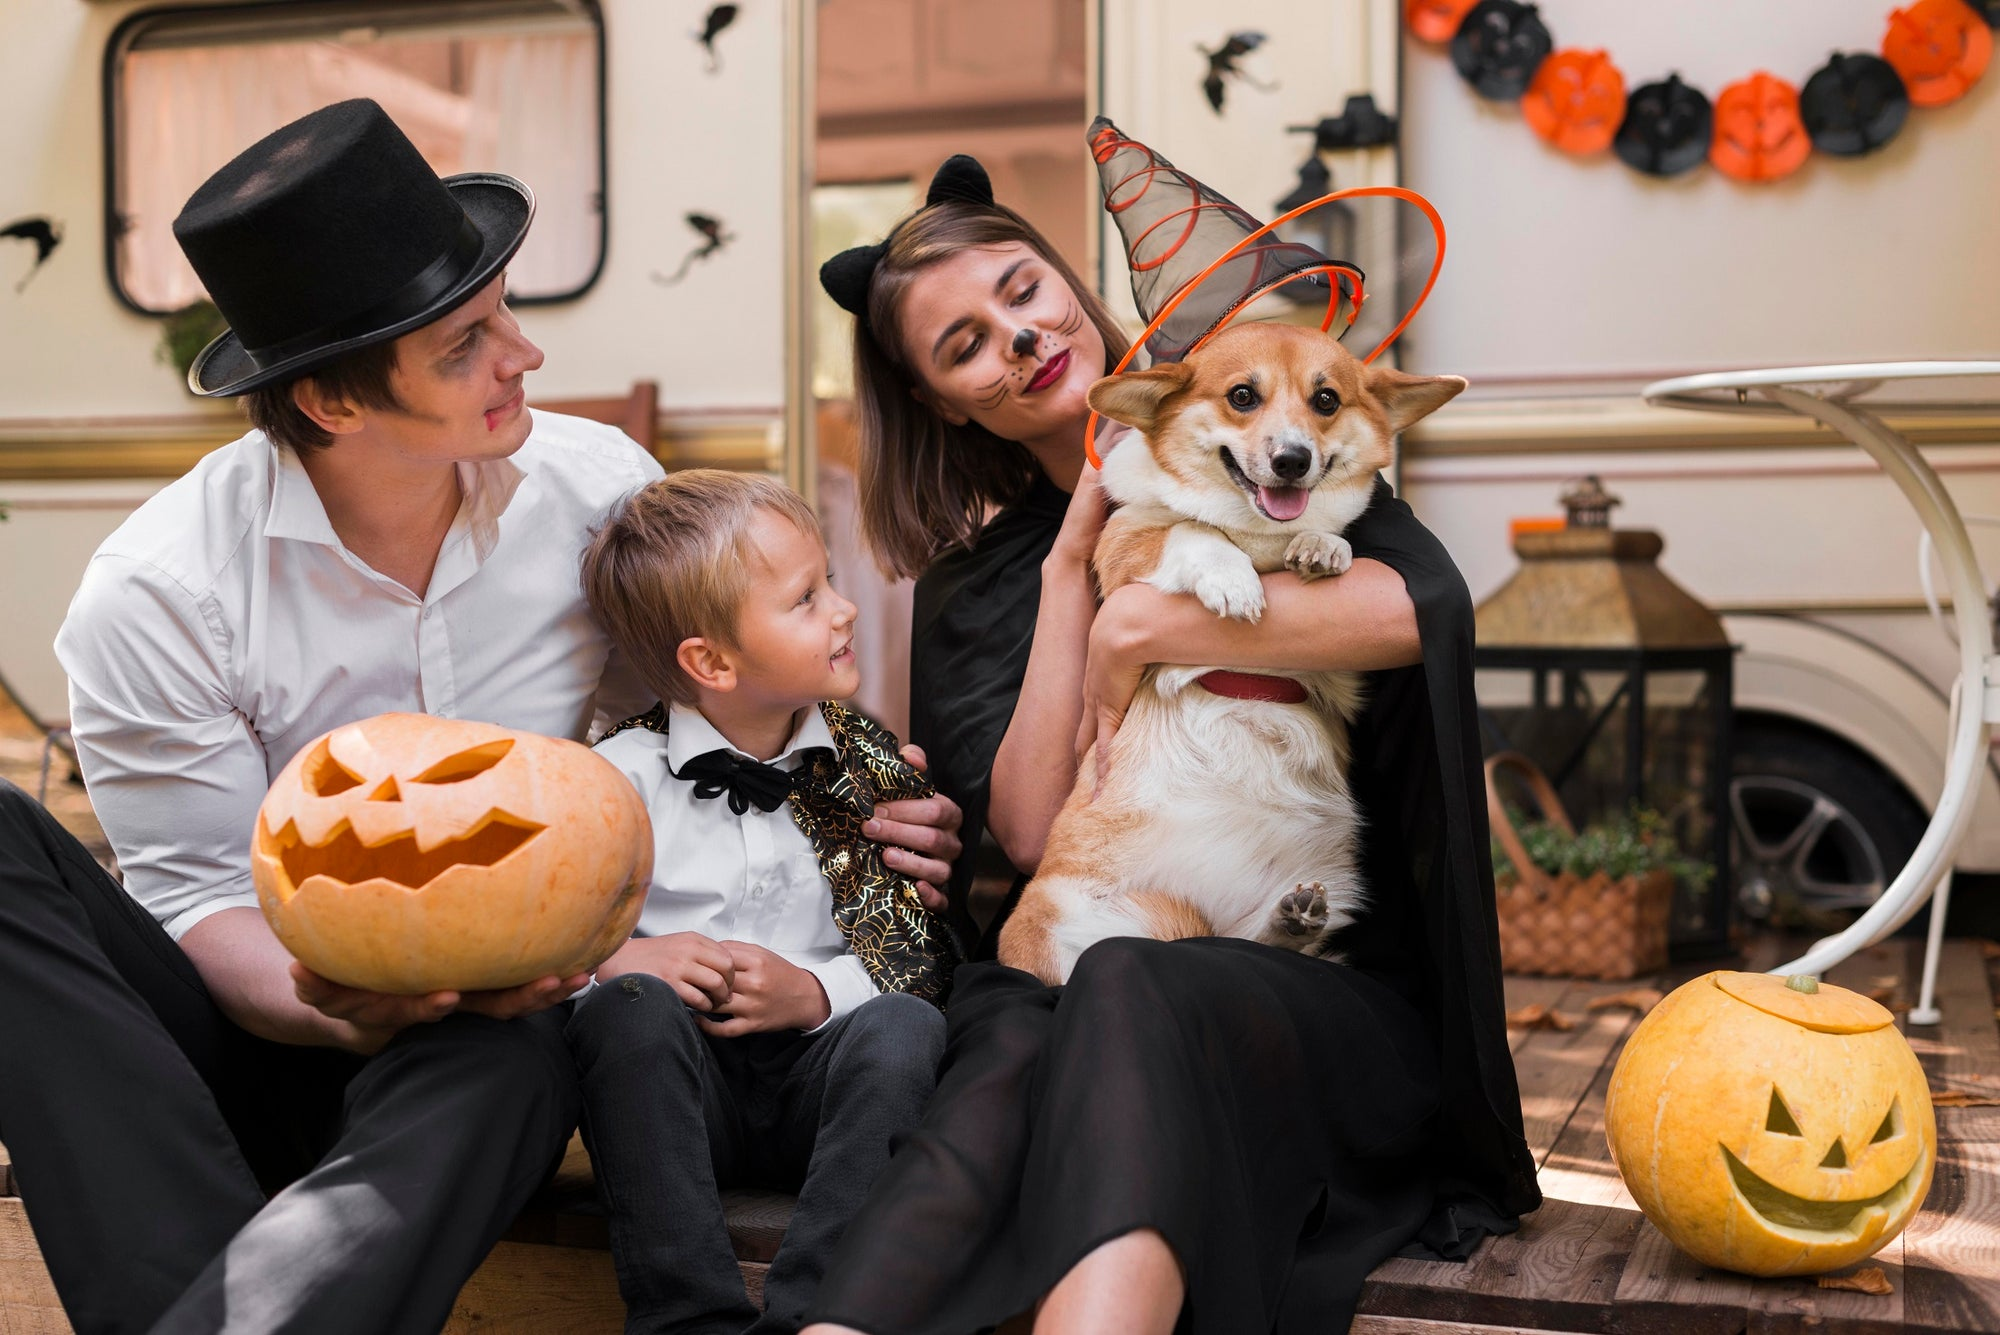 5 Must-Dos to Keep Your Dog Safe This Halloween